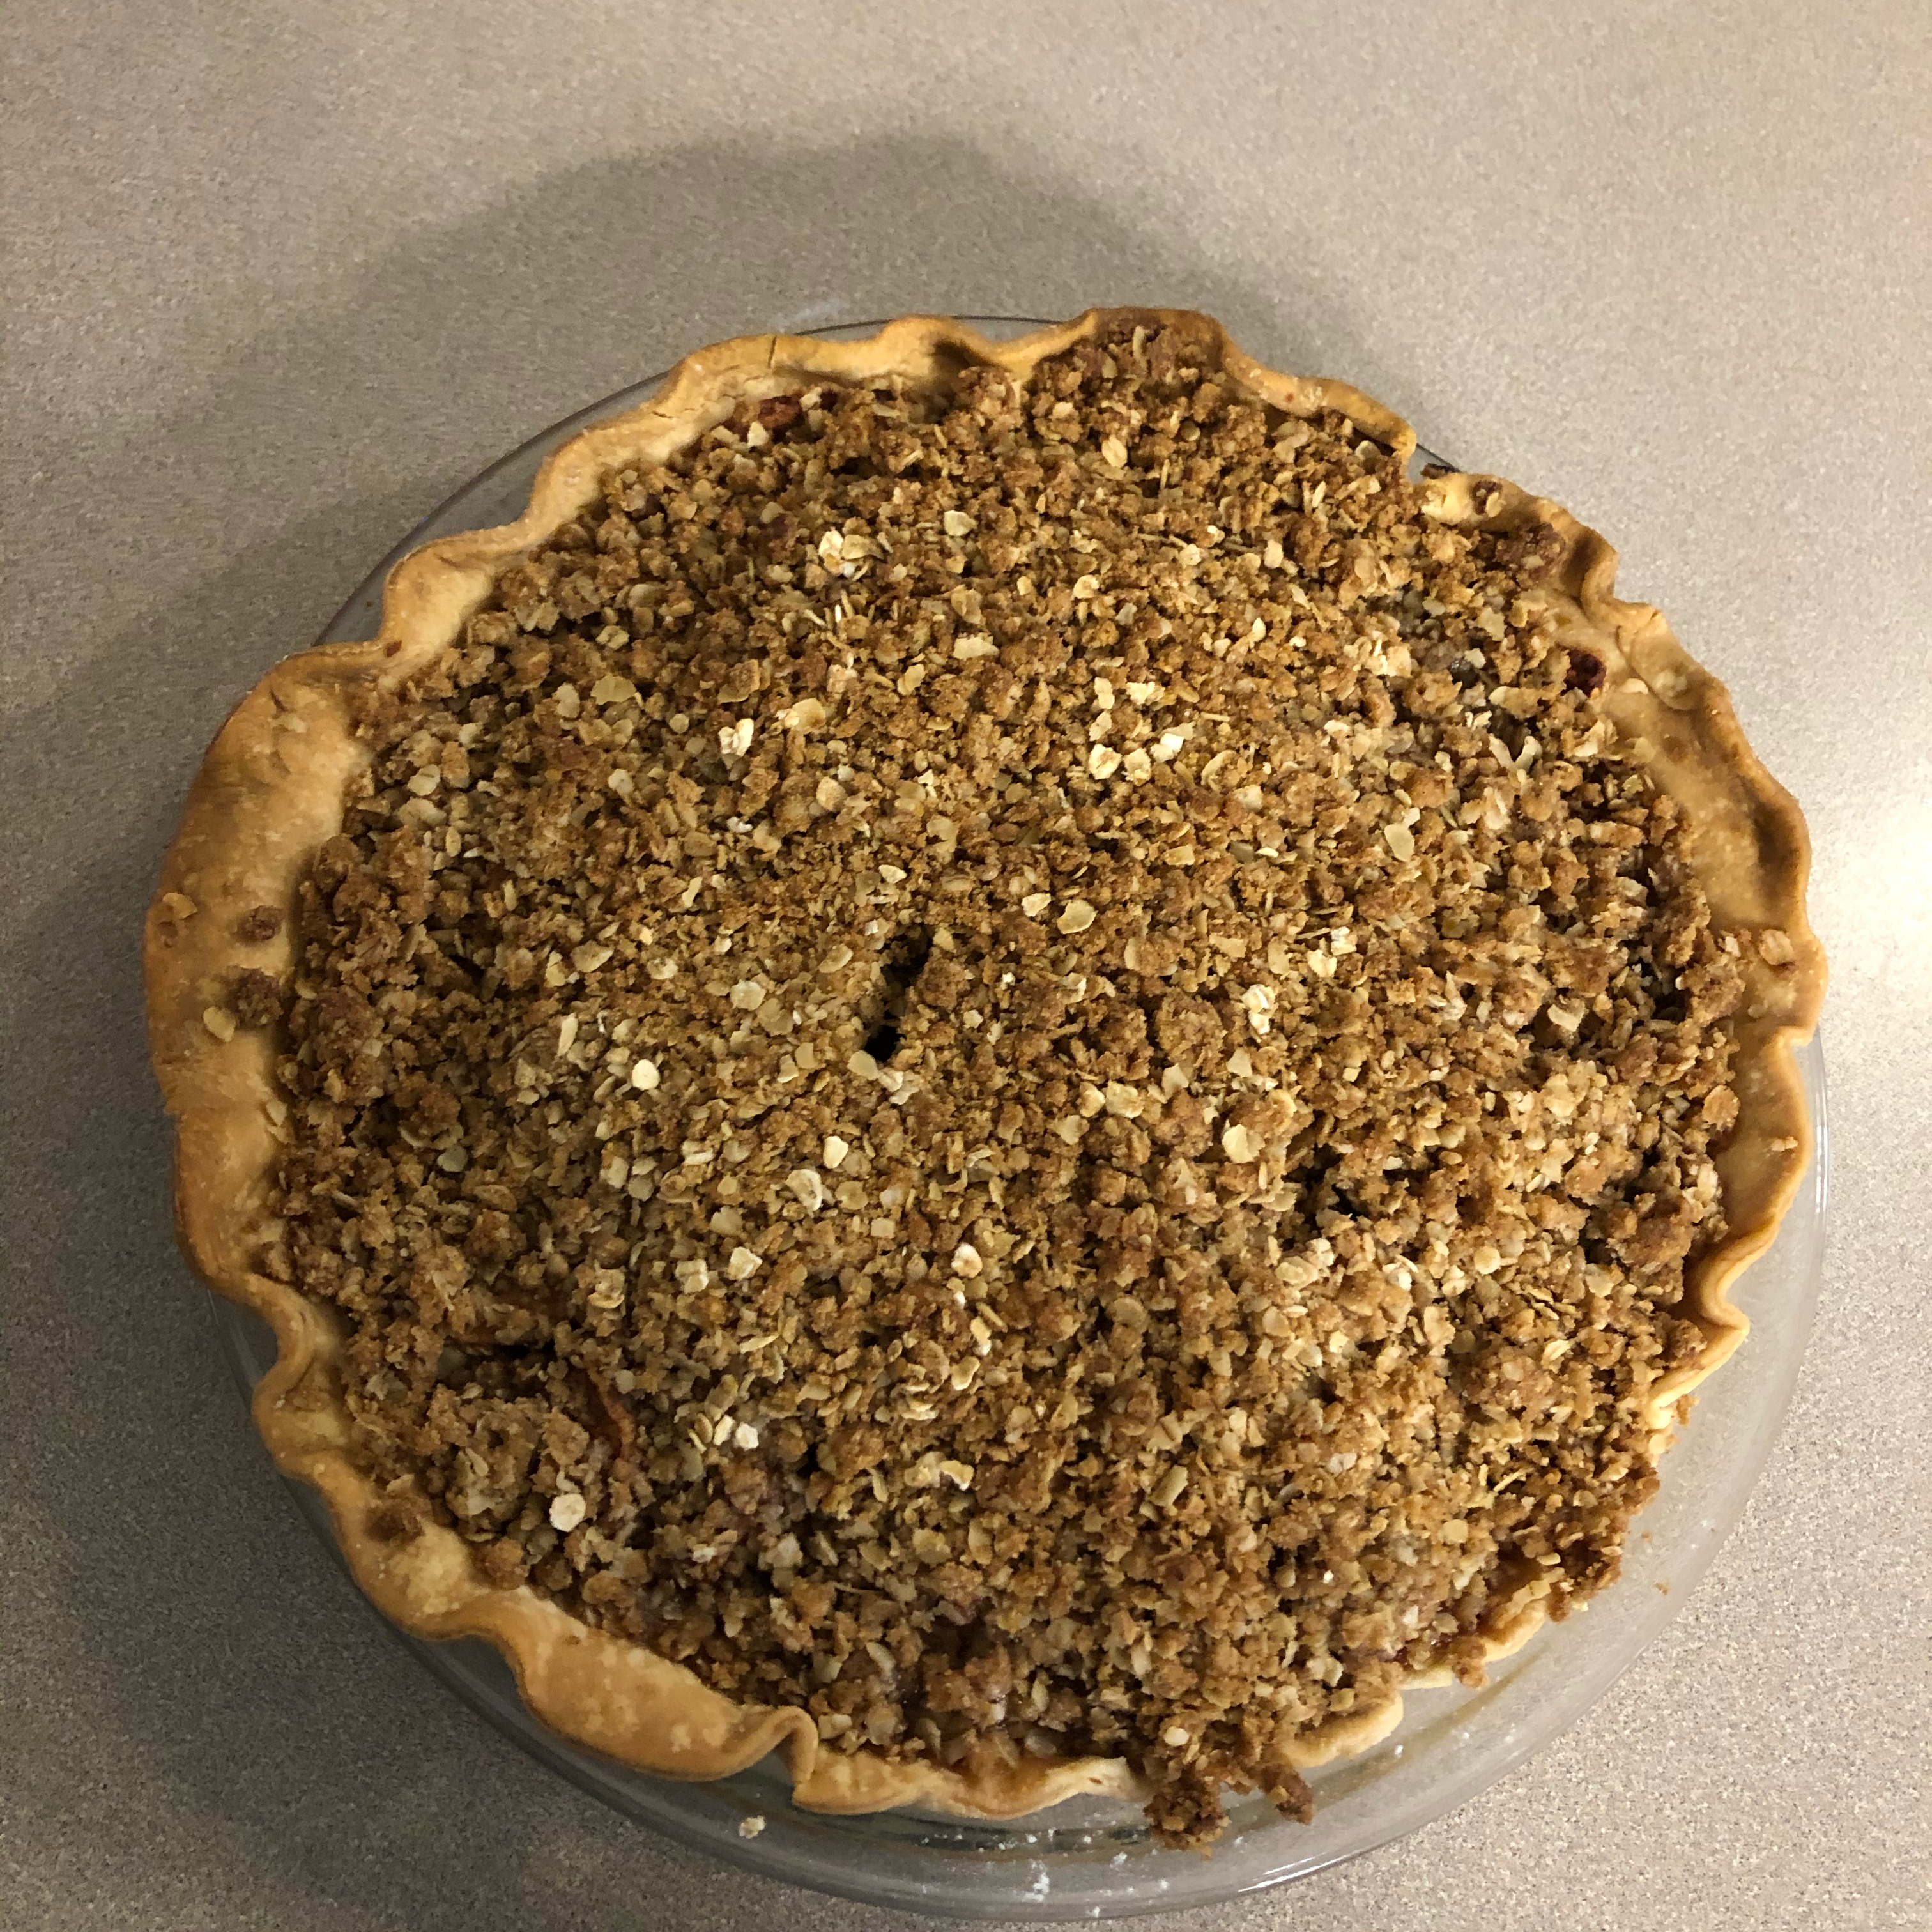 Caramel Apple Crumble Pie Lauren Arpan